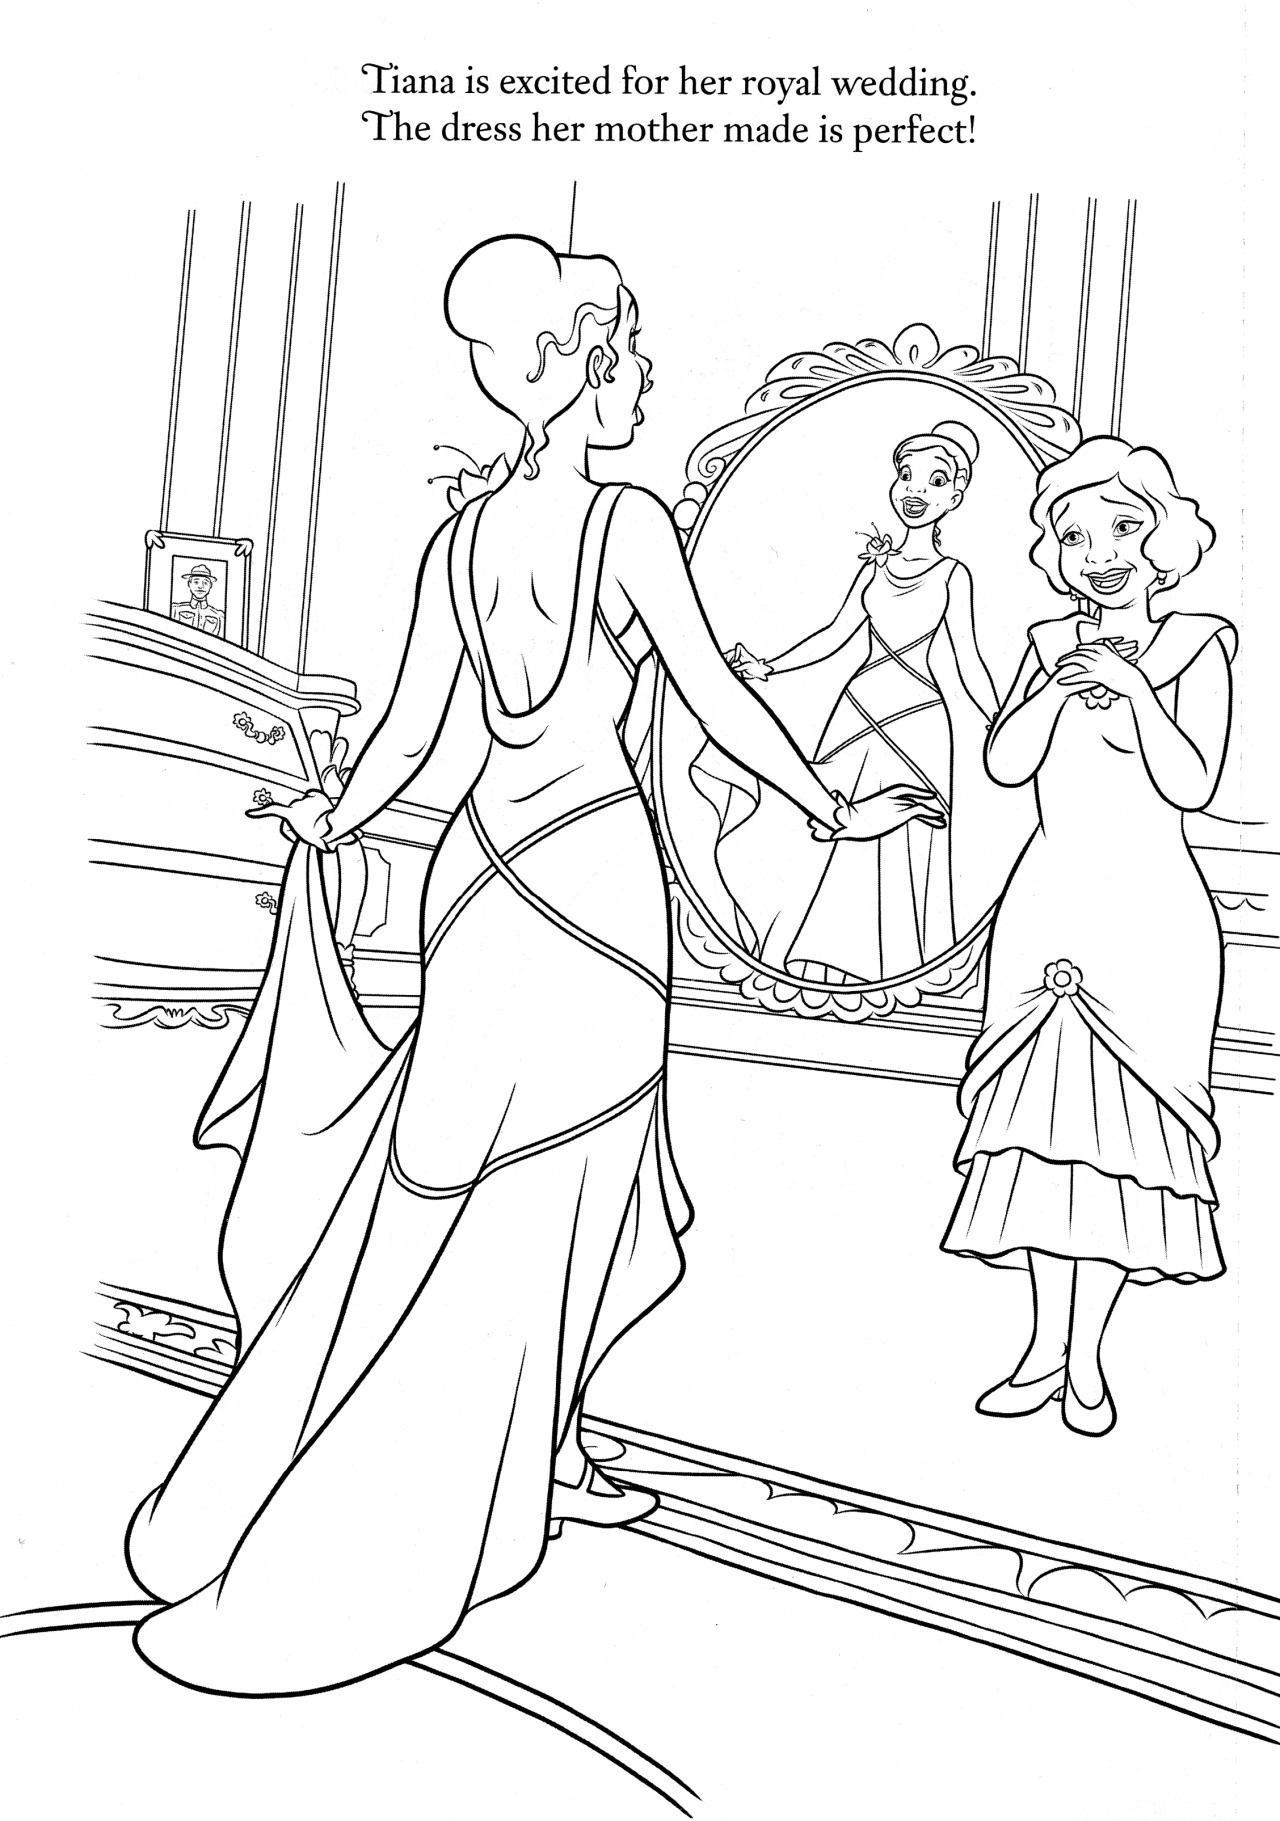 Princess and the Frog, Coloring Pages | Disney - Coloring Pages ...